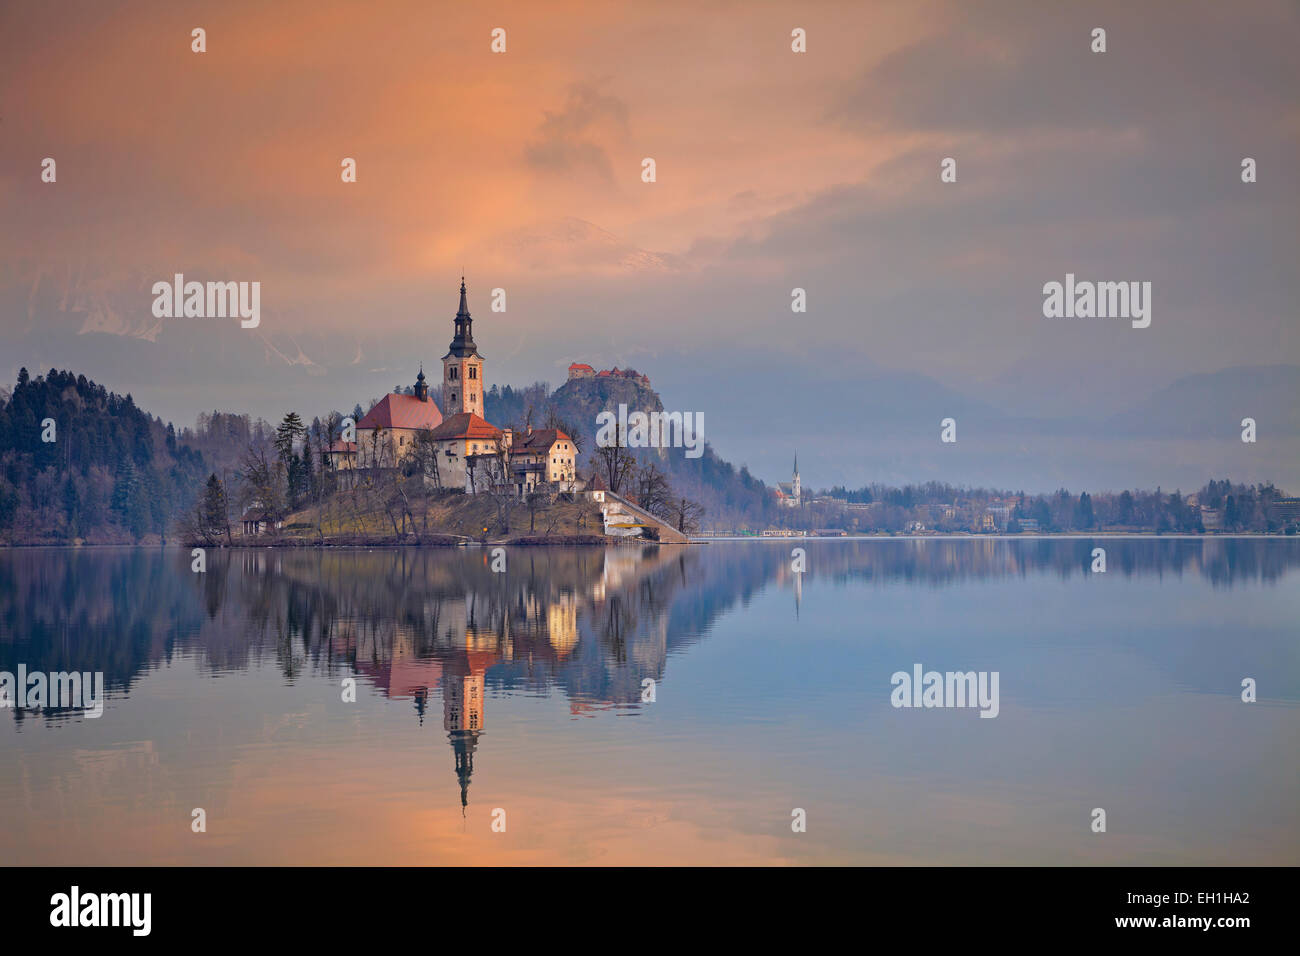 Lake Bled. Lake Bled with St. Marys Church of the Assumption on the small island. Bled, Slovenia, Europe. Stock Photo